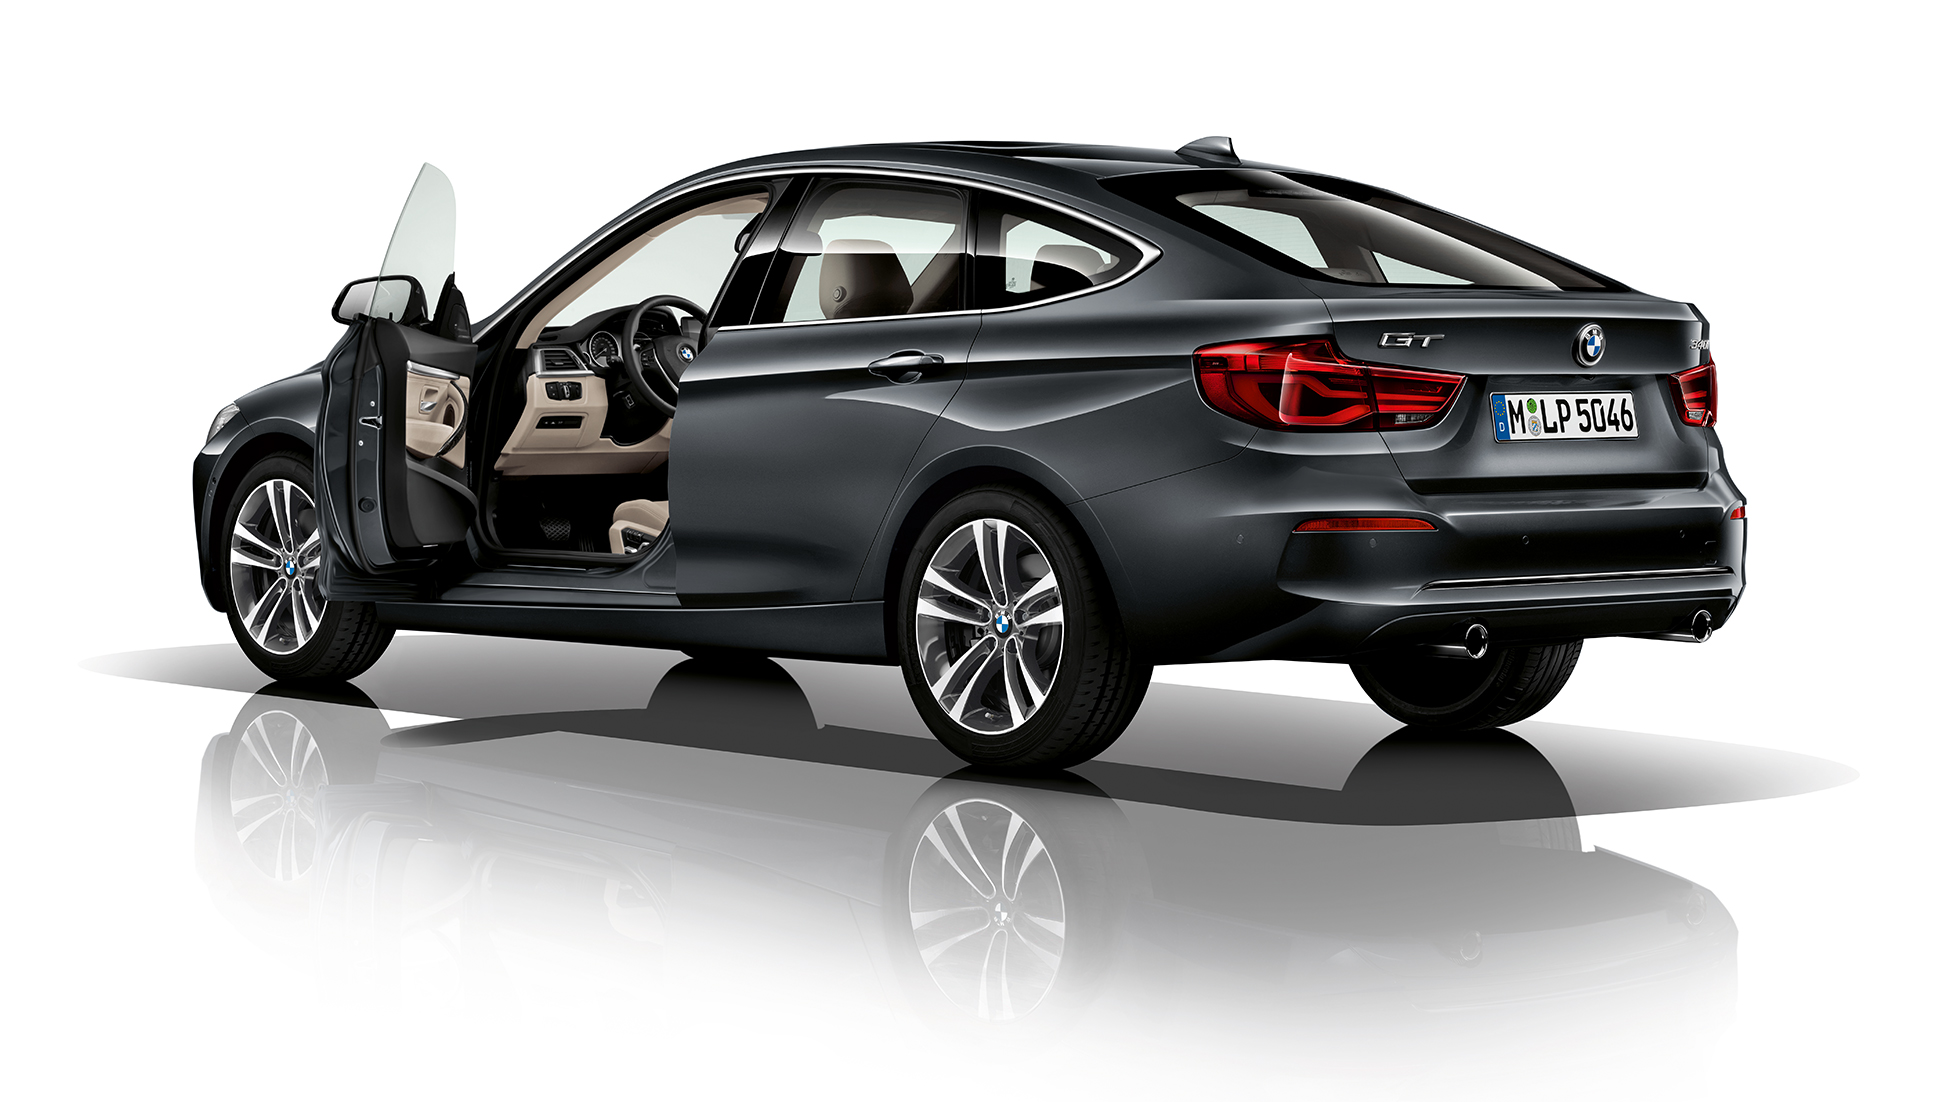 BMW 3 Series Gran Turismo, Model Sport Line three-quarter rear shot